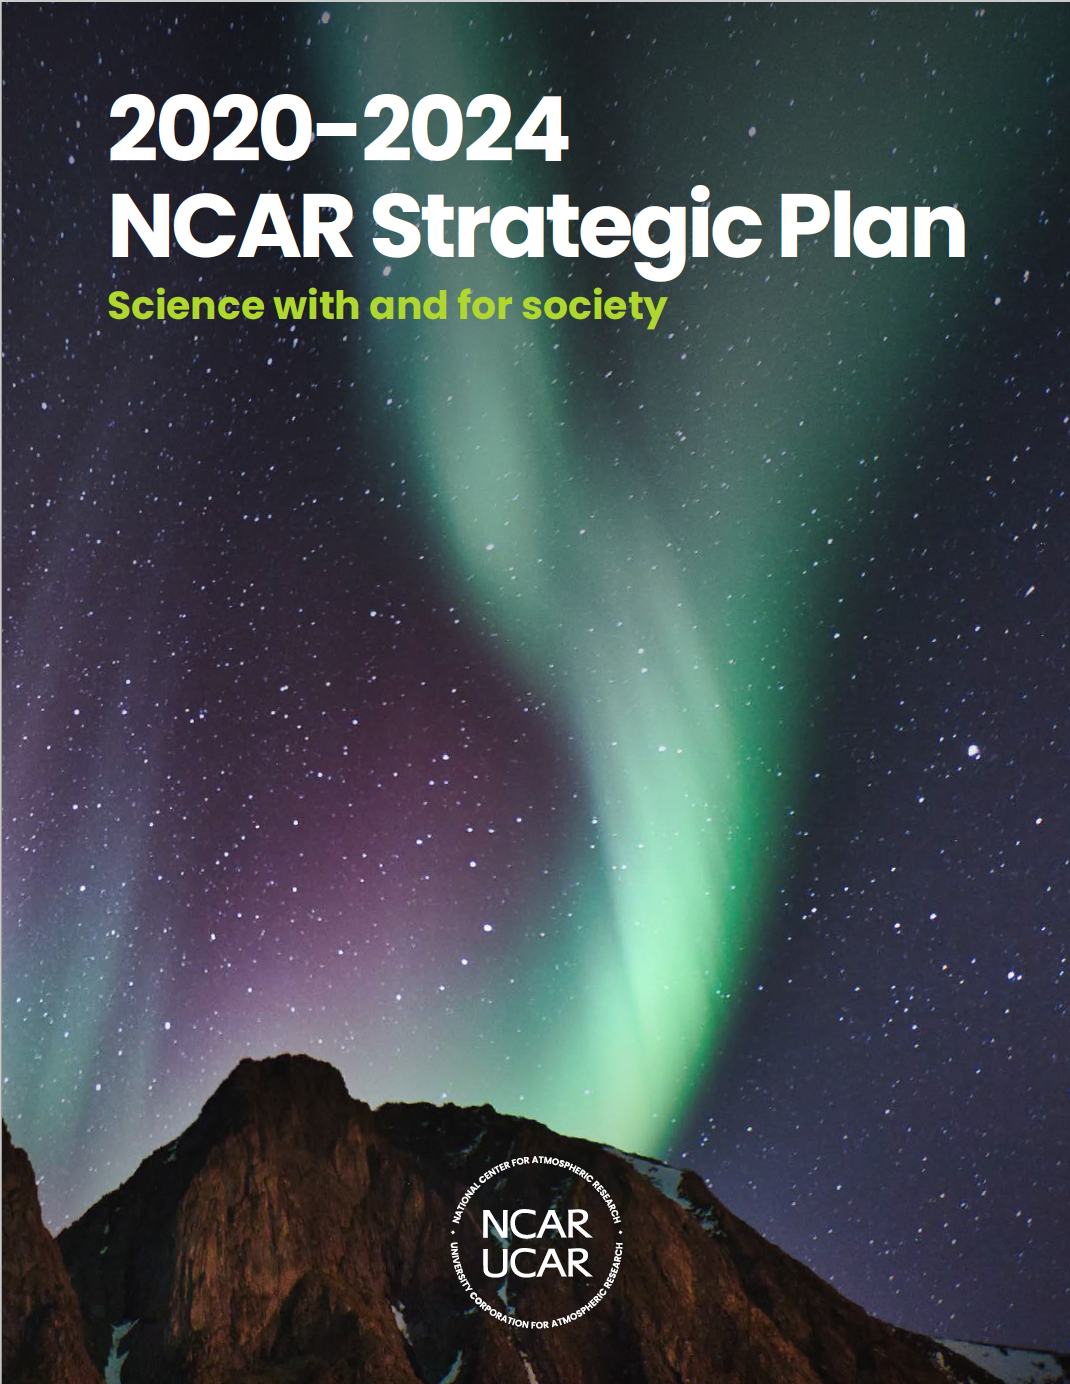 The cover of the NCAR strategic plan